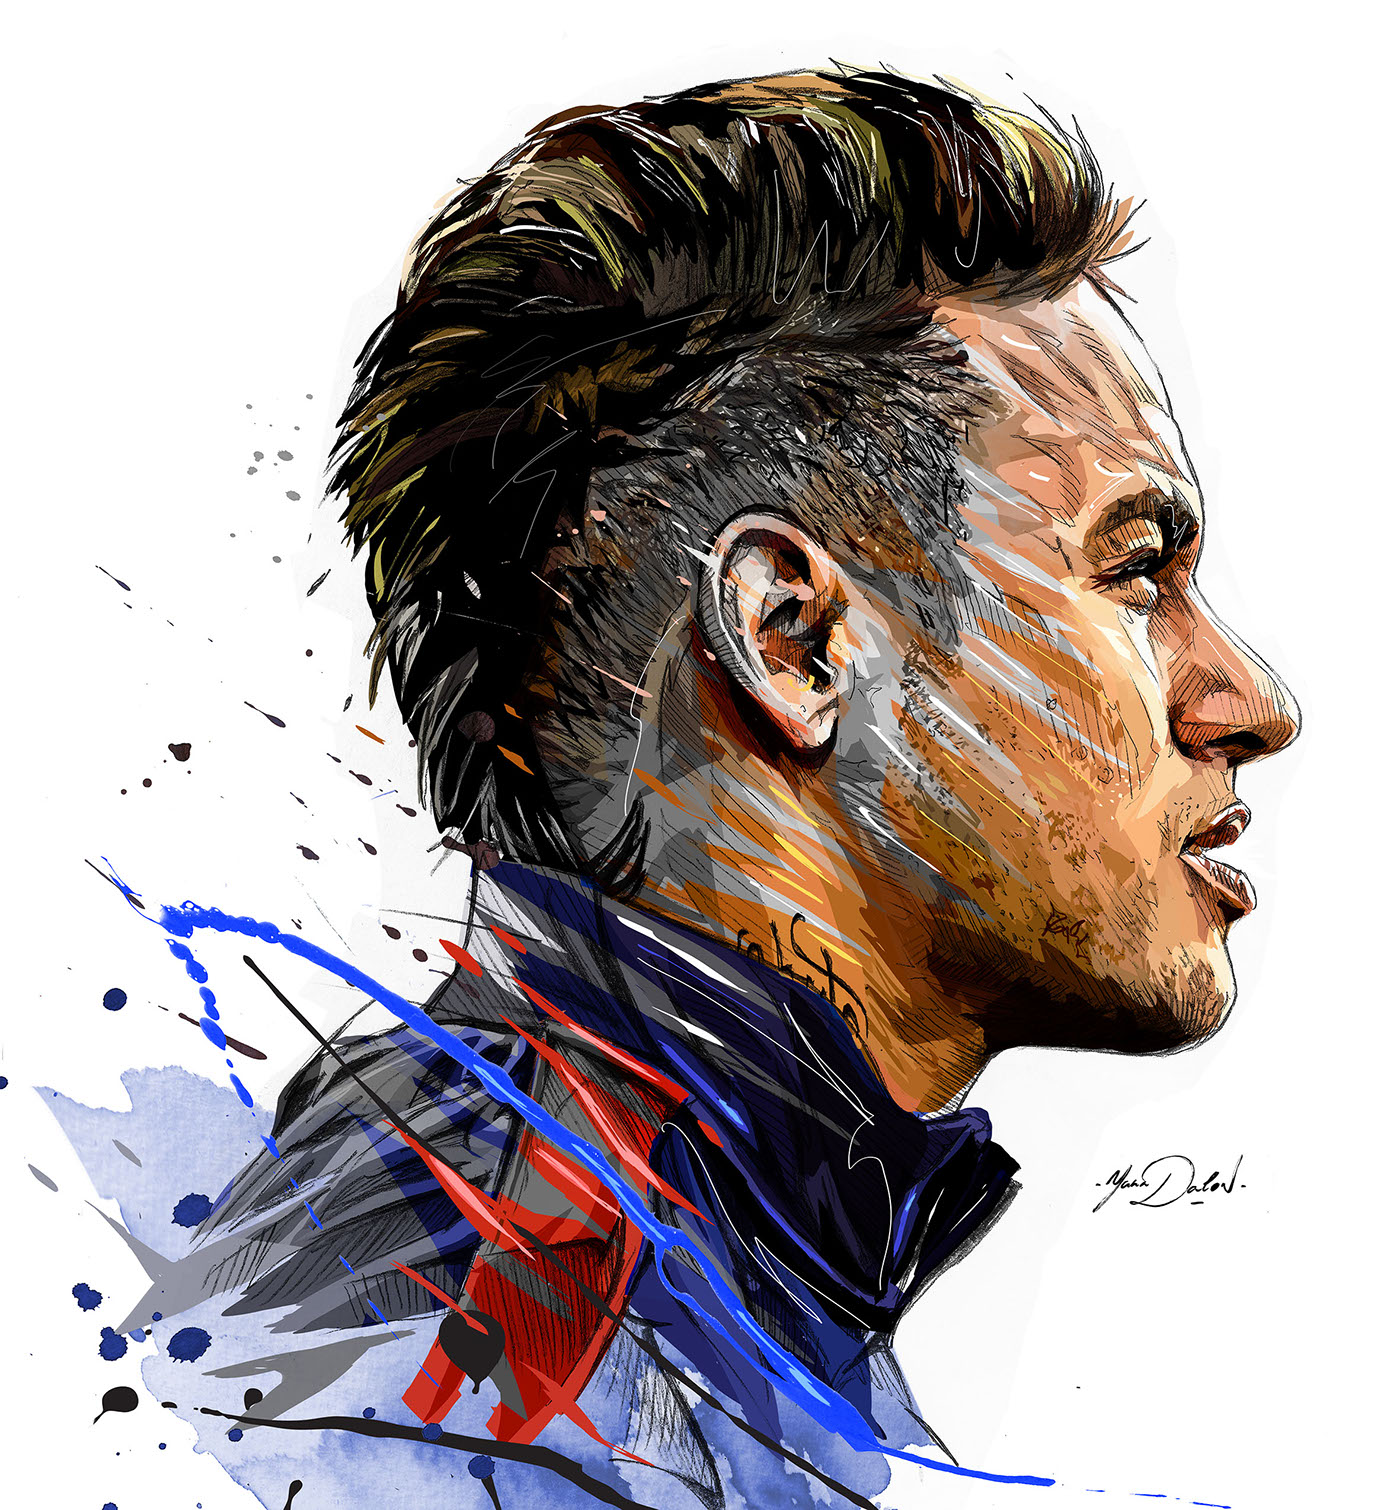 World Cup Draw Image >> NEYMAR. JR on Behance